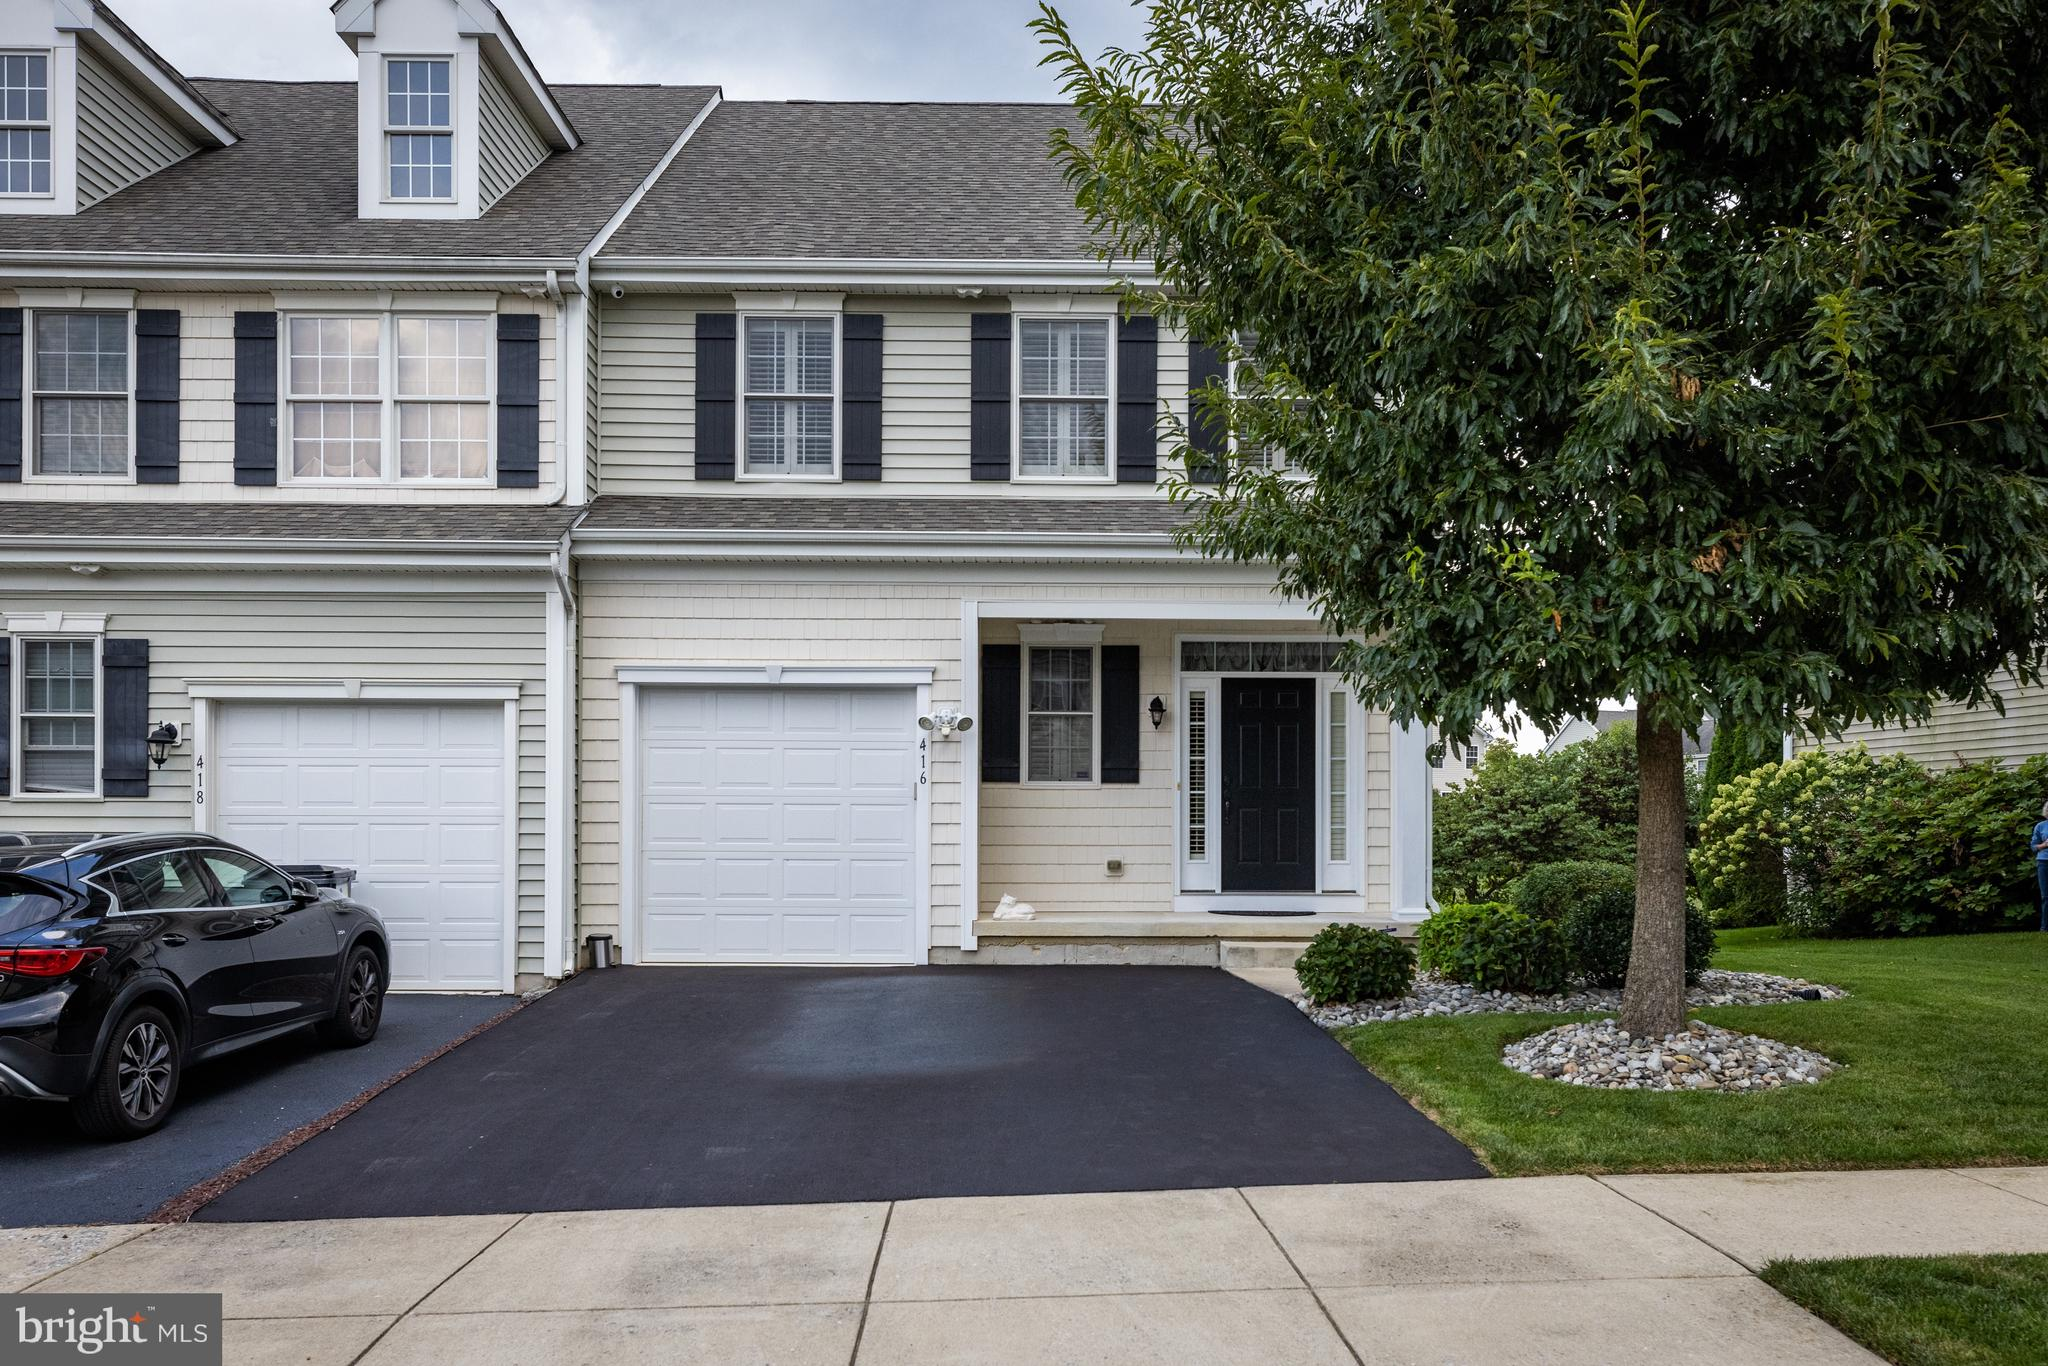 Welcome to 416 Afton Drive in the sought after development of Canal View! This beautifully maintained end unit townhome has been meticulously cared for by its original owners since it was bought as a new construction home in 2010. A plethora of highlights and upgrades make this home a true gem including a three-year-old whole-house Generac generator, one-year-old Lennox AC, Navien tankless water heater, double-pane Andersen windows, Trex deck w/ Trex privacy screen, SunSetter motorized awning above deck, Acorn stairlift chair, upgraded padding and carpet, plantation shutters and sliding doors, upstairs laundry, double sinks in both upstairs bathrooms, CTD security system (no monthly fee), driveway freshly resurfaced, river rock hard-scaling around house and under deck, basement egress window well, sump pump with backup/redundant pump, Trane XB furnace serviced annually, Honeywell humidifier, five external-mounted security cameras, painted garage with LiftMaster belt-driven (no chain) garage door opener, and so many more! No need to cut the grass...it's included in the HOA dues. This beautiful home is just off the C&D canal and is just minutes from Rt. 1. No tolls!